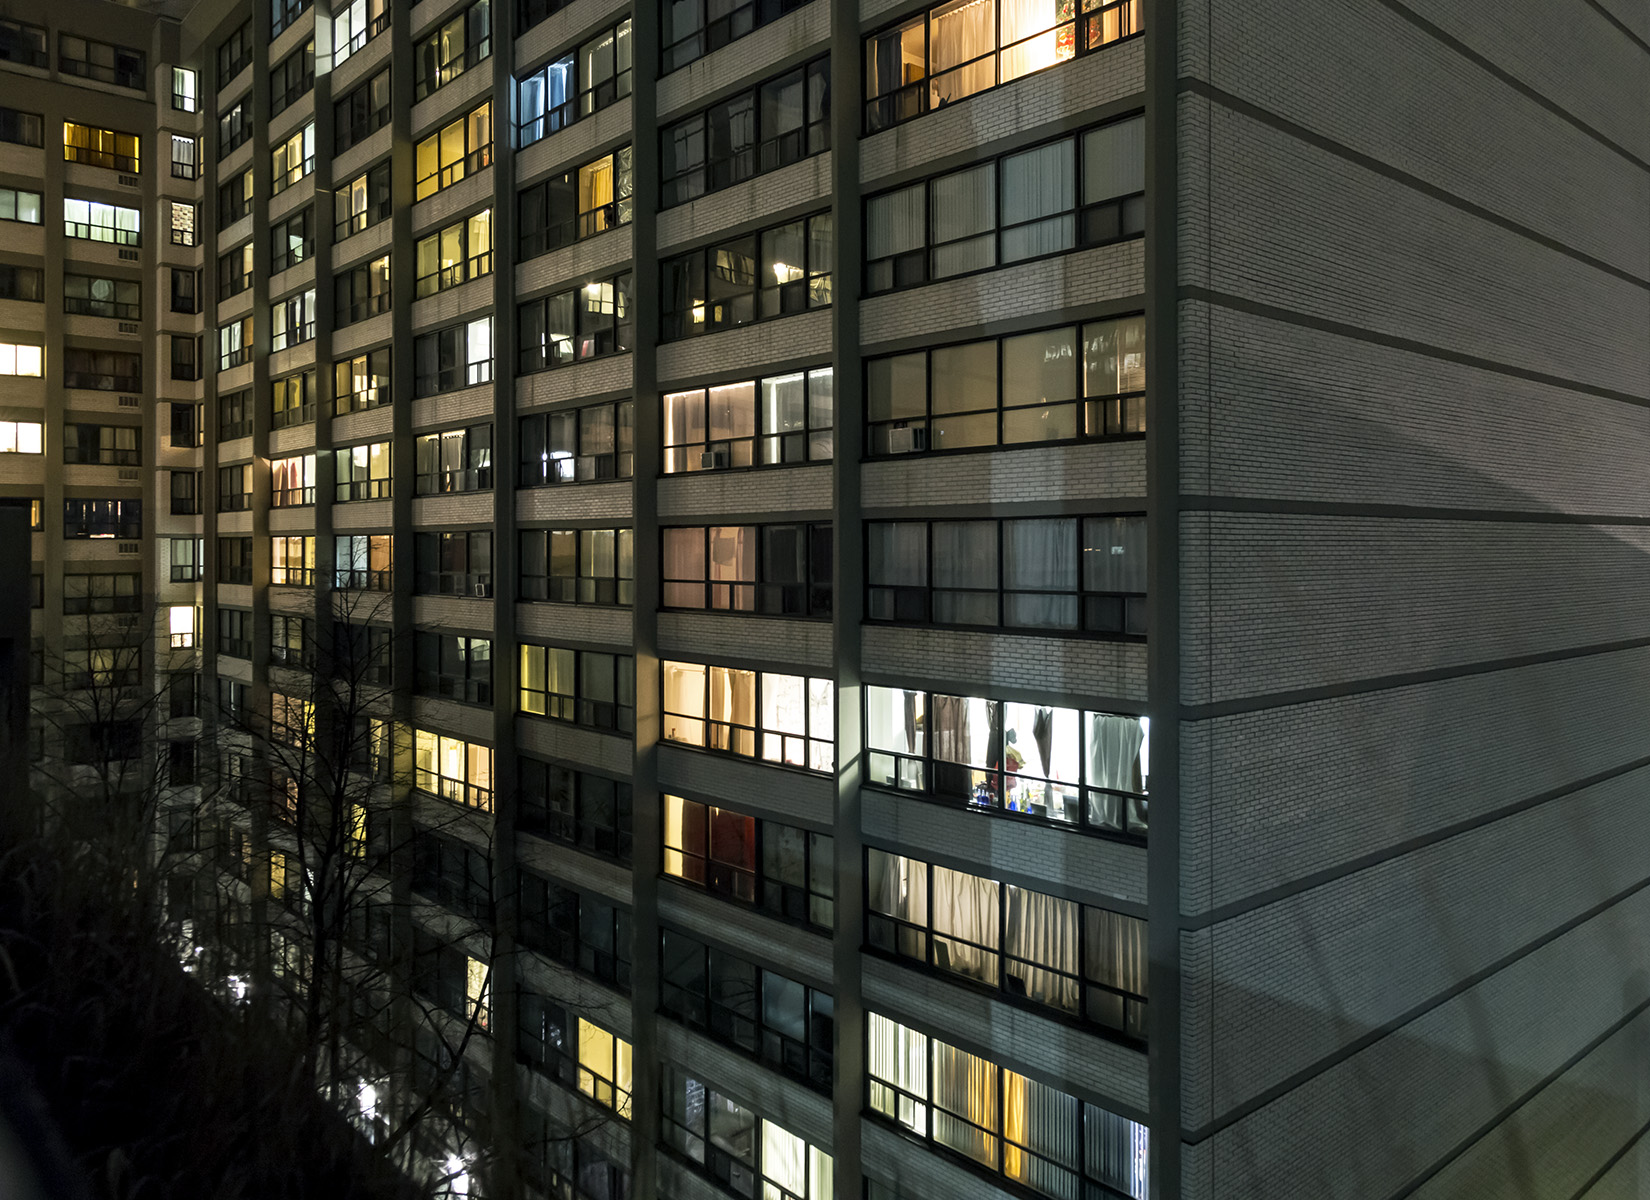 20151226. The windows of people's lives....in a modernist high-r